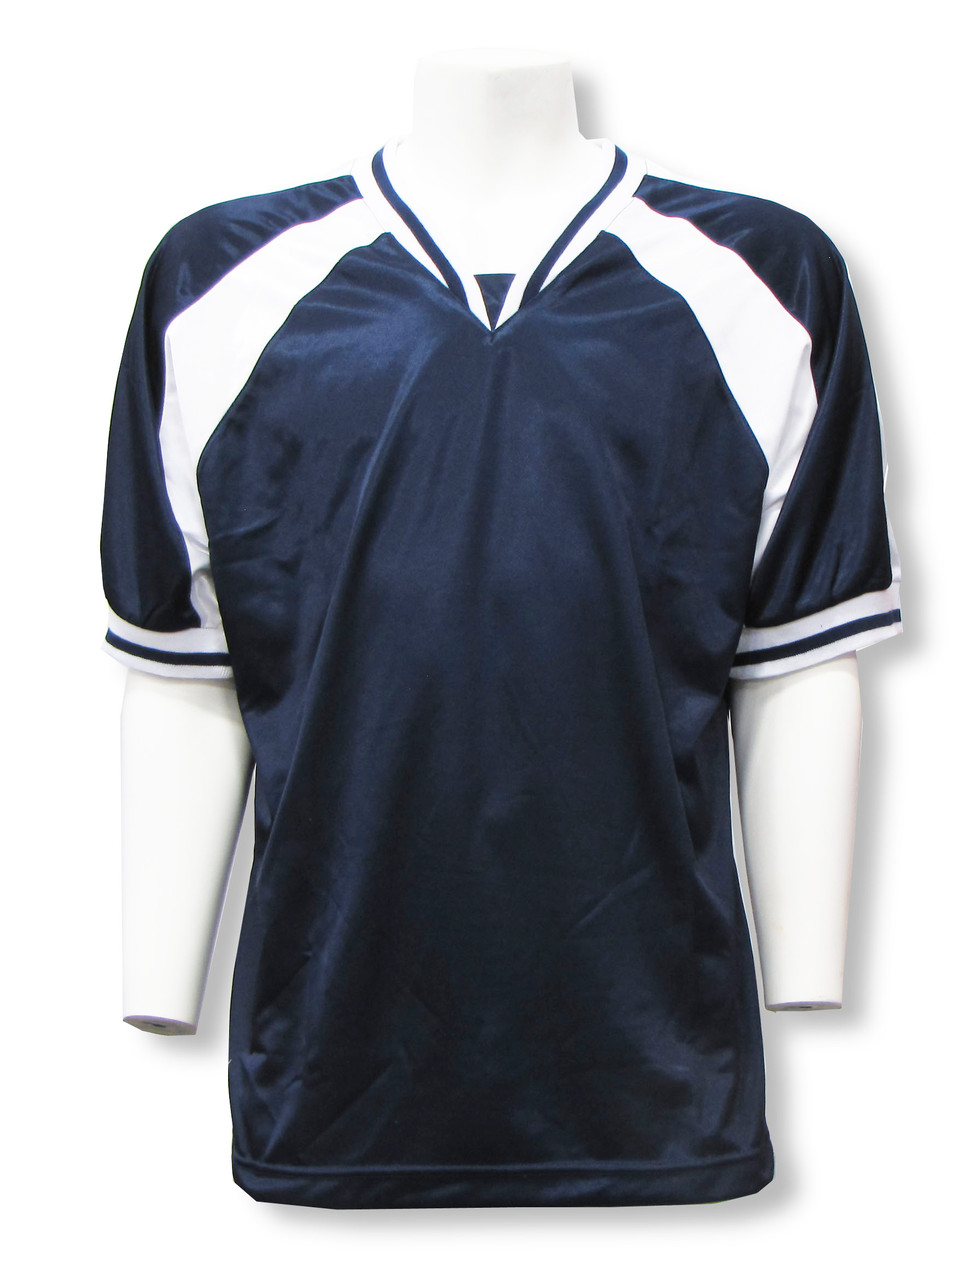 cedb66154 Spitfire Soccer Jersey - Youth and Adult Soccer Uniforms